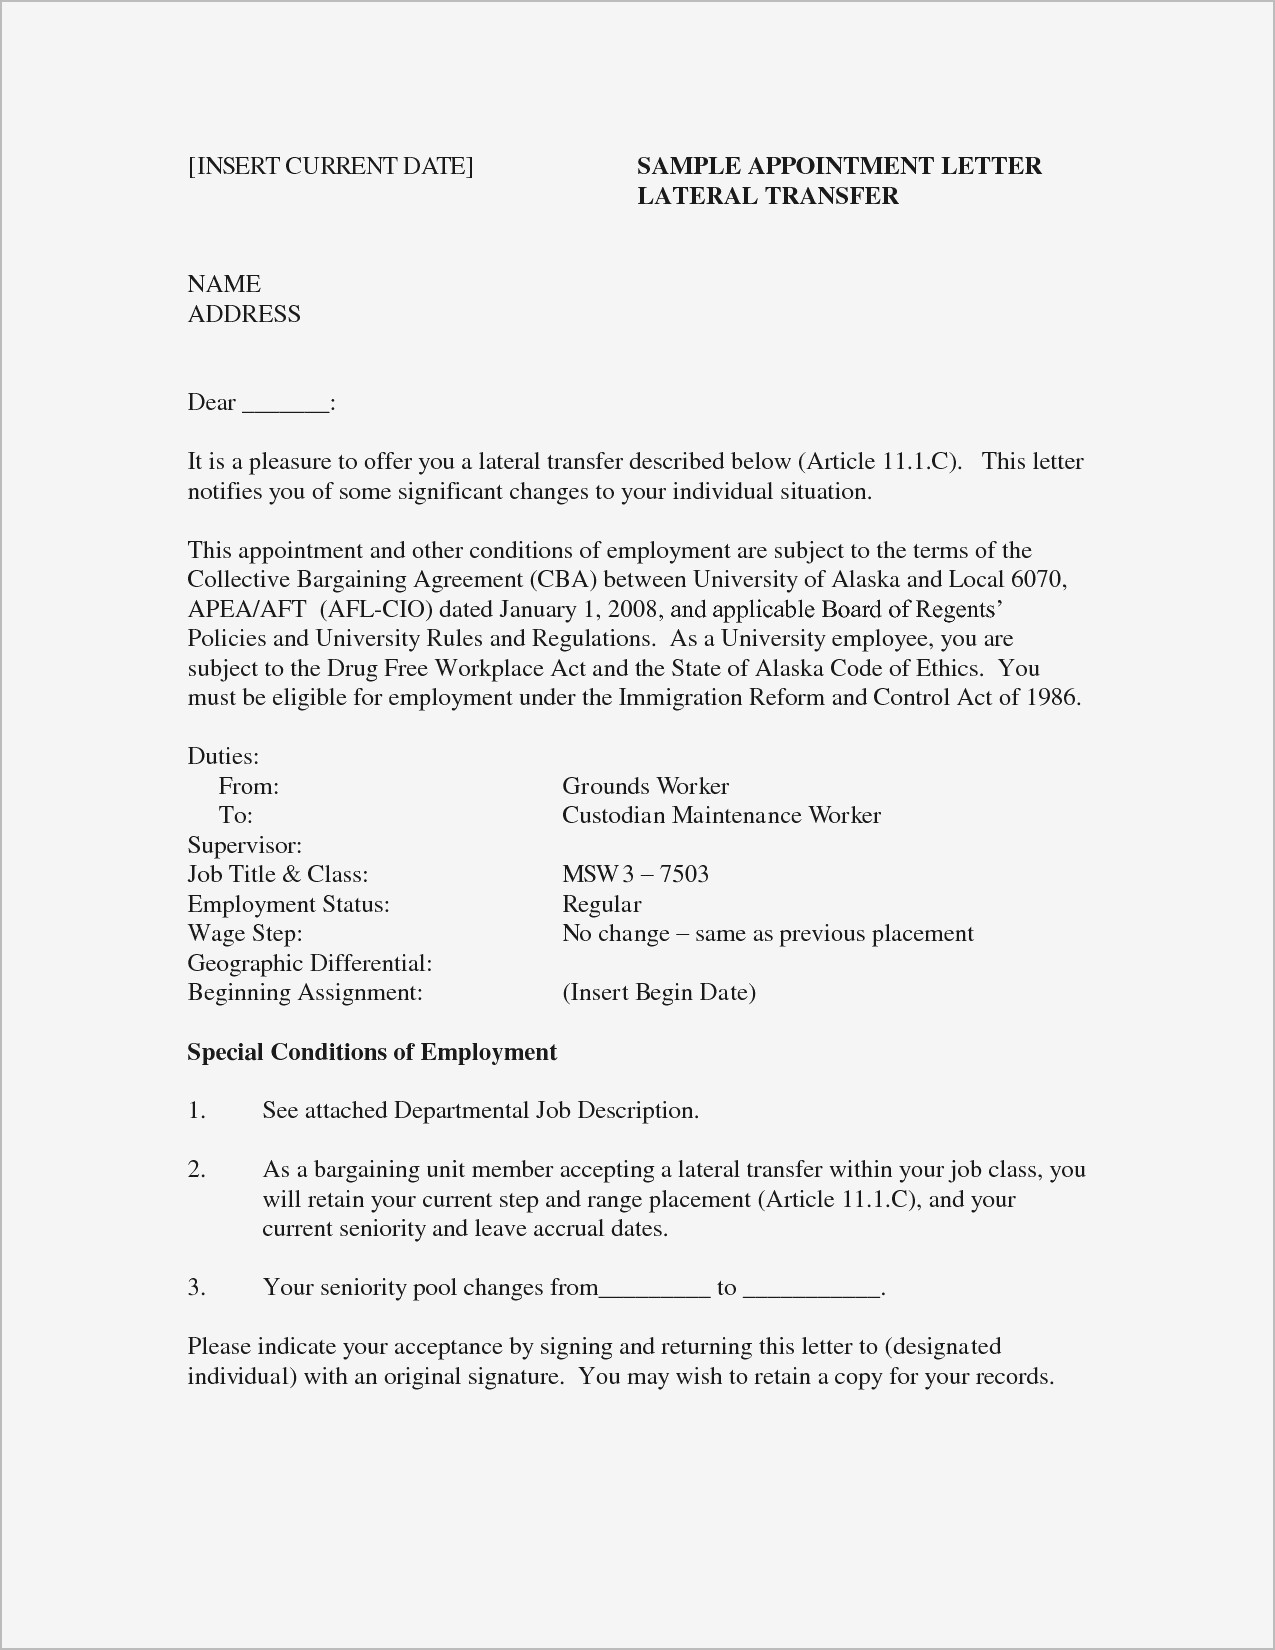 New Board Member orientation Welcome Letter Template - Professional Cover Letter Example Pdf format